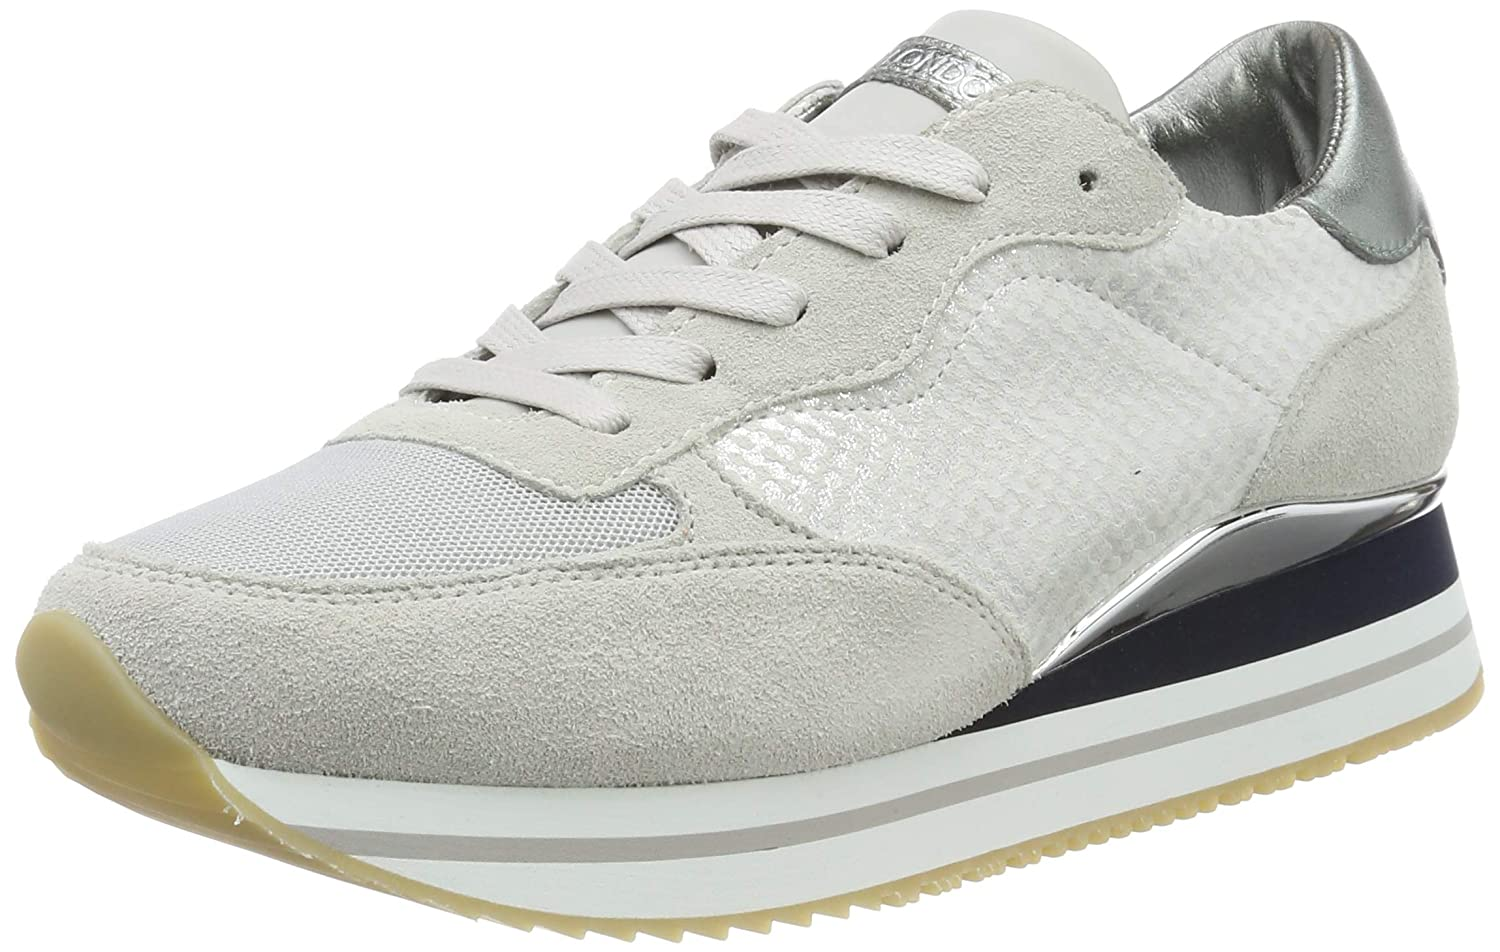 Crime london 25502pp1 scarpe da ginnastica basse donna amazon shoes grigio